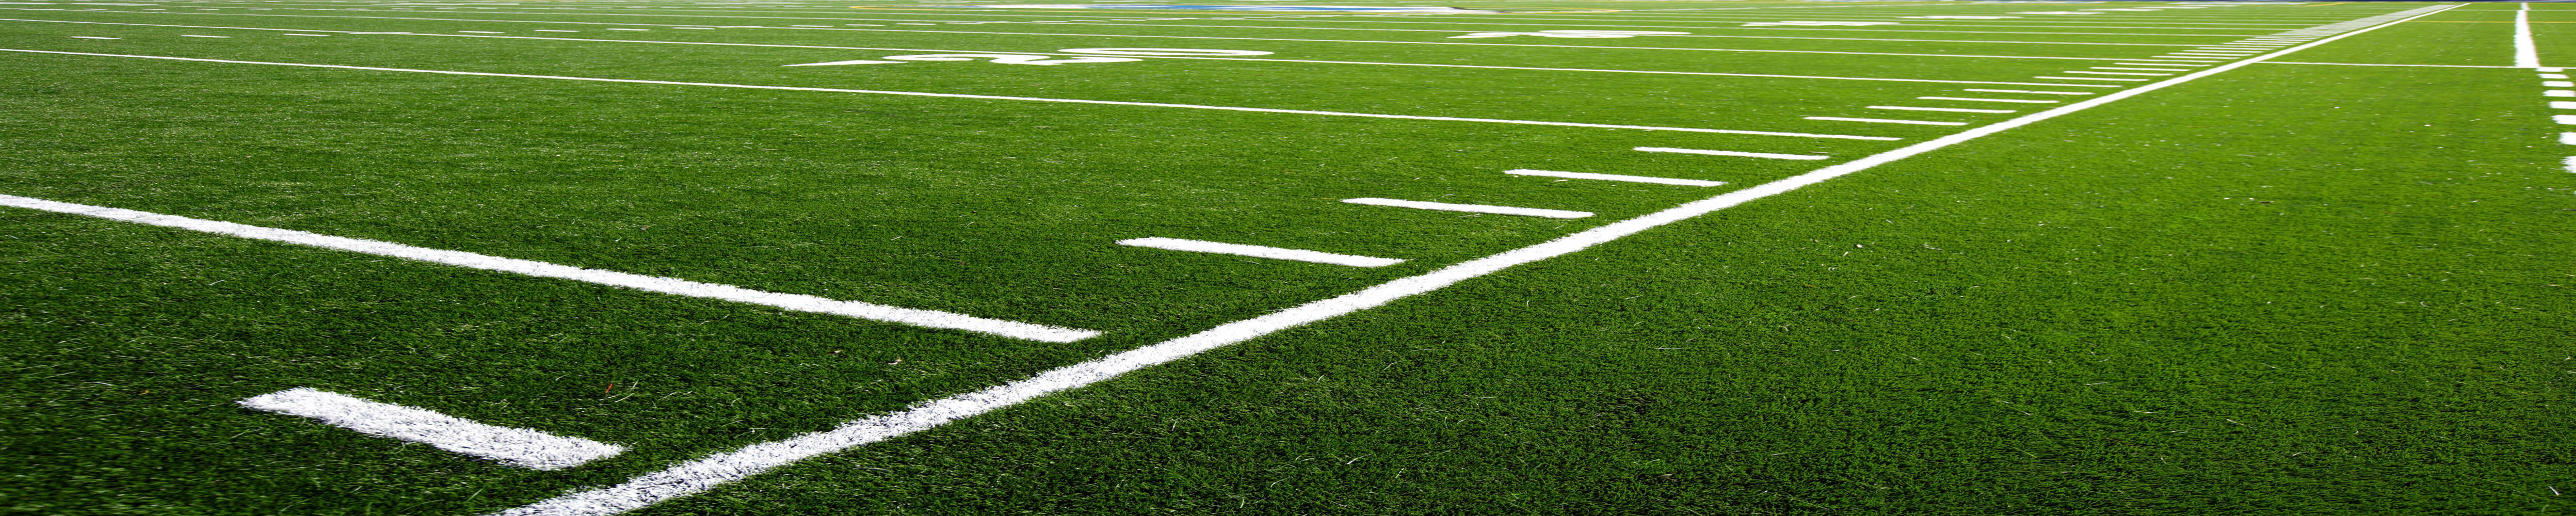 Nfl Football Field Background Image Splitverage sam monson blogging